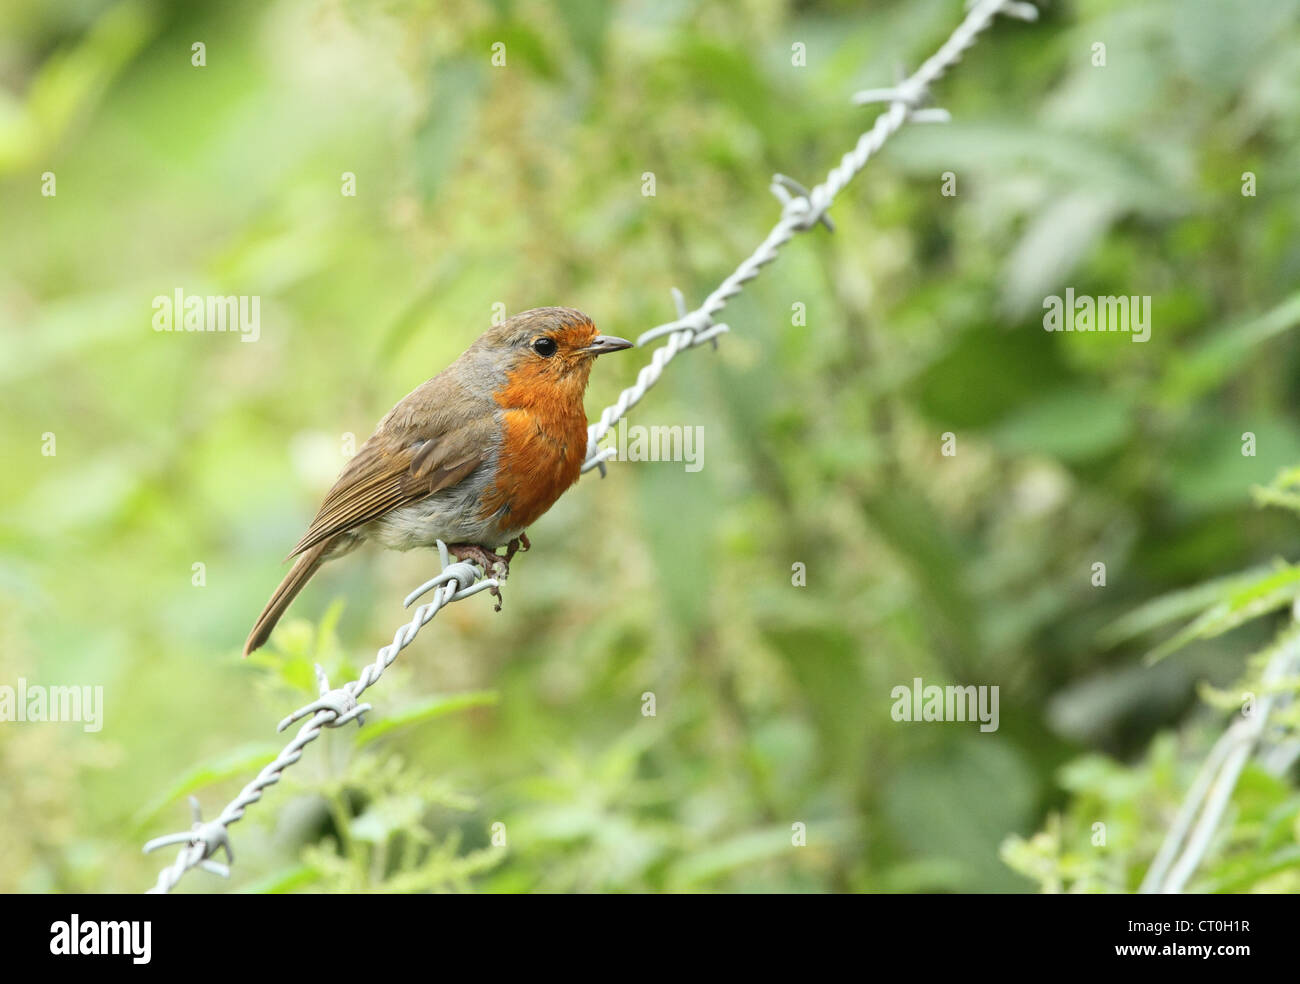 robin bird on barbed wire fence Stock Photo